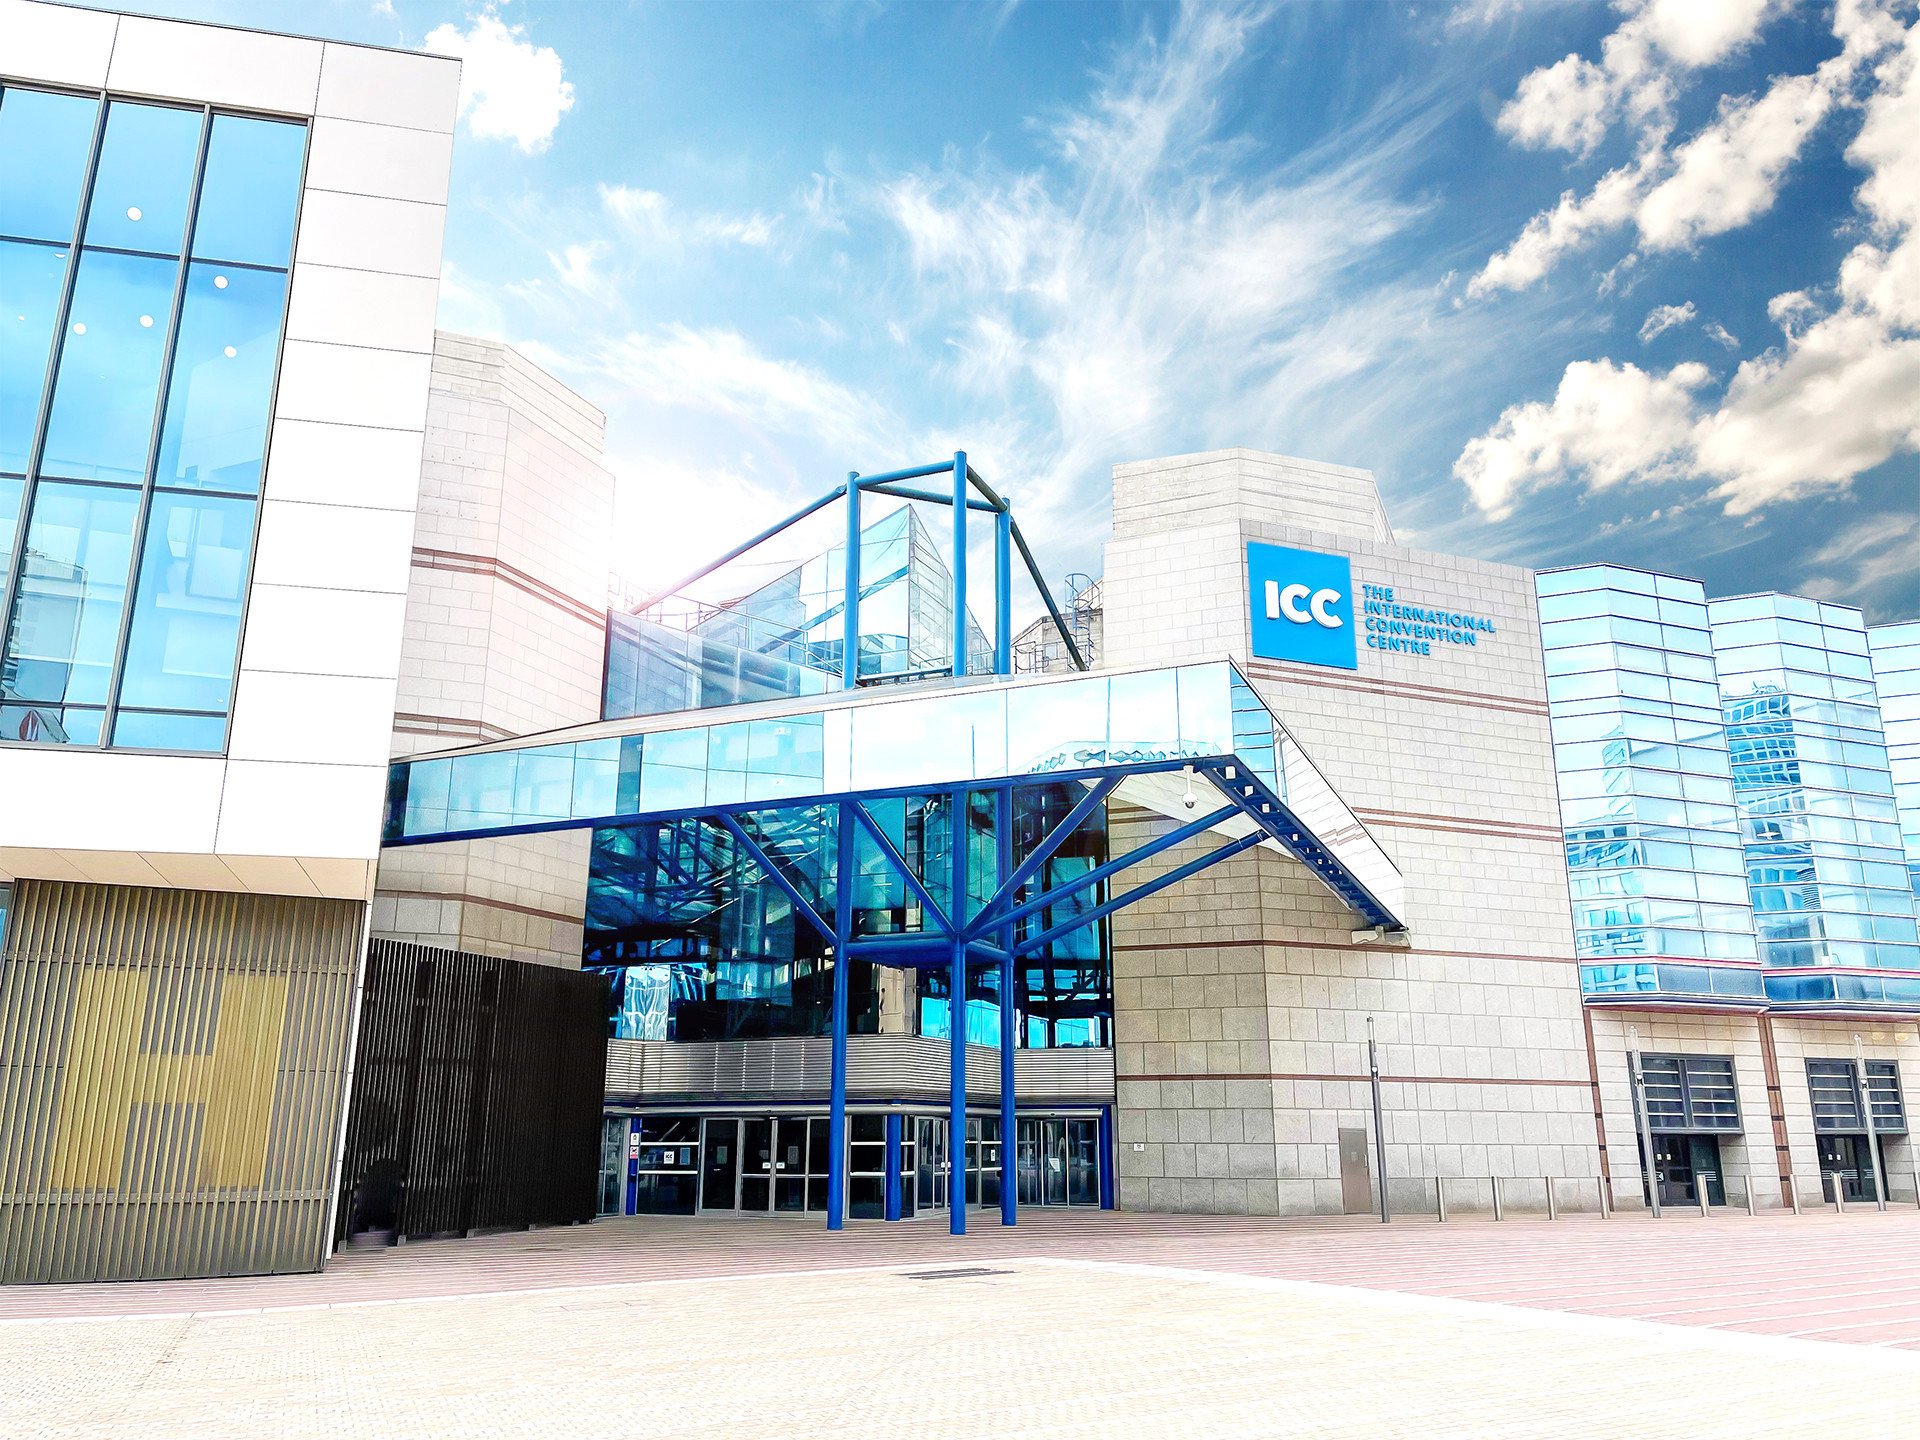 International Convention Centre in Birmingham to host 2026 IWG World Conference